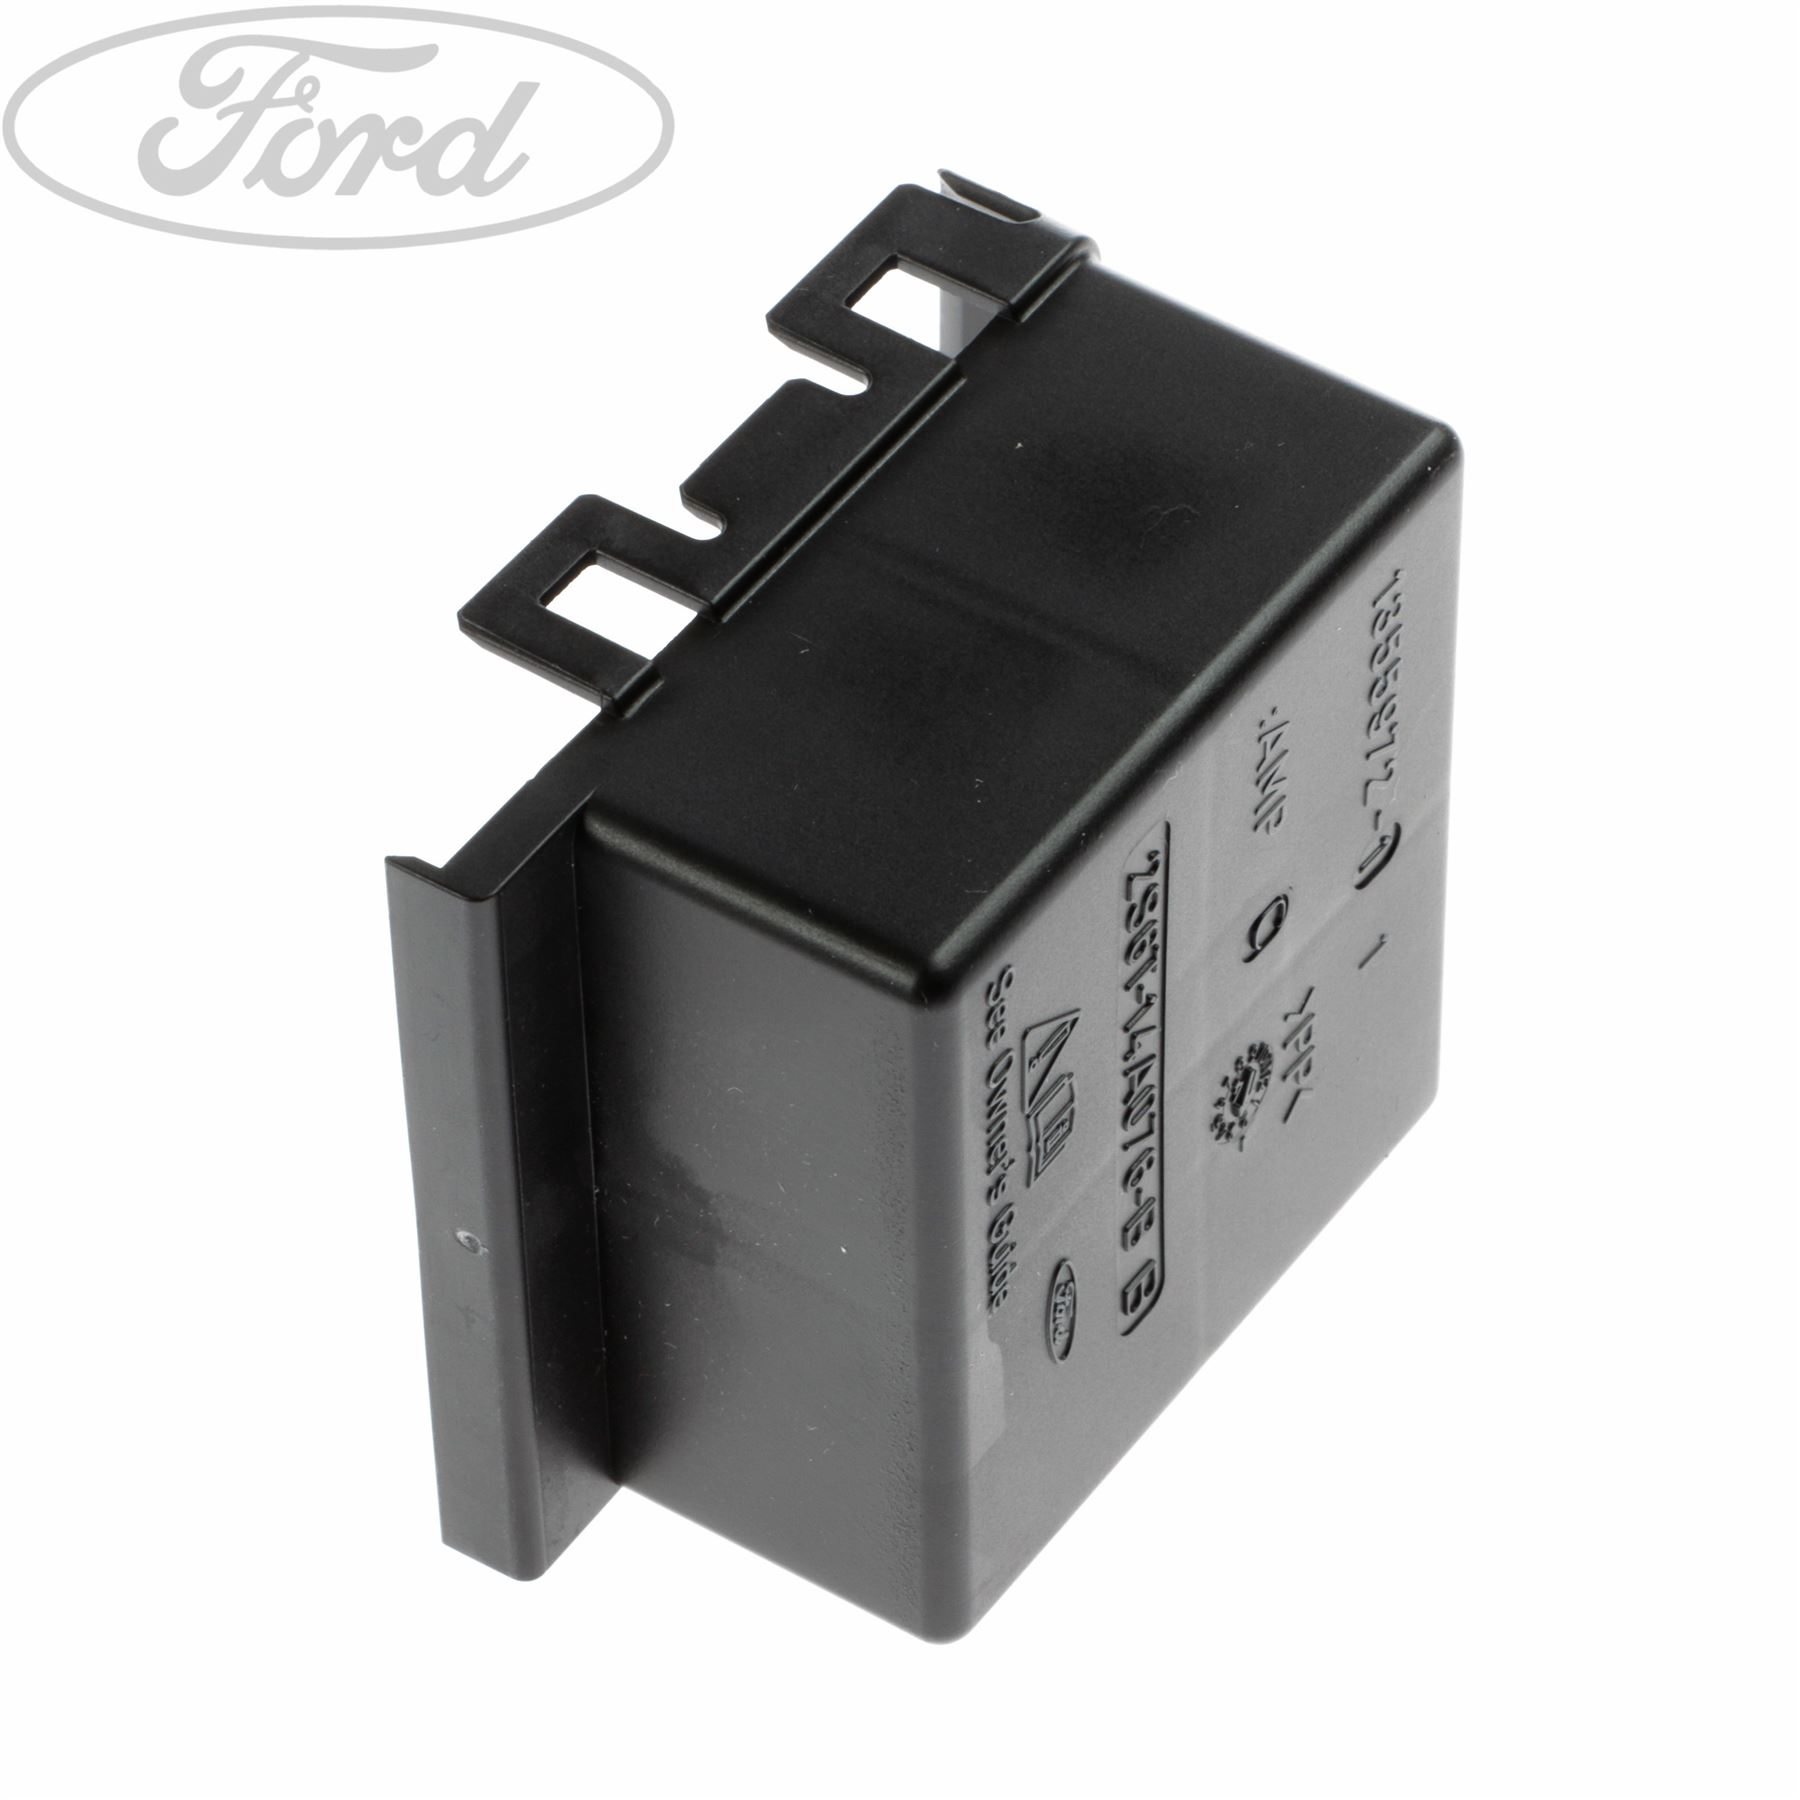 Genuine Ford Fiesta Mk7 Additional Fuse Cover 1857572 Ebay Mark 5 Box Picture 4 Of